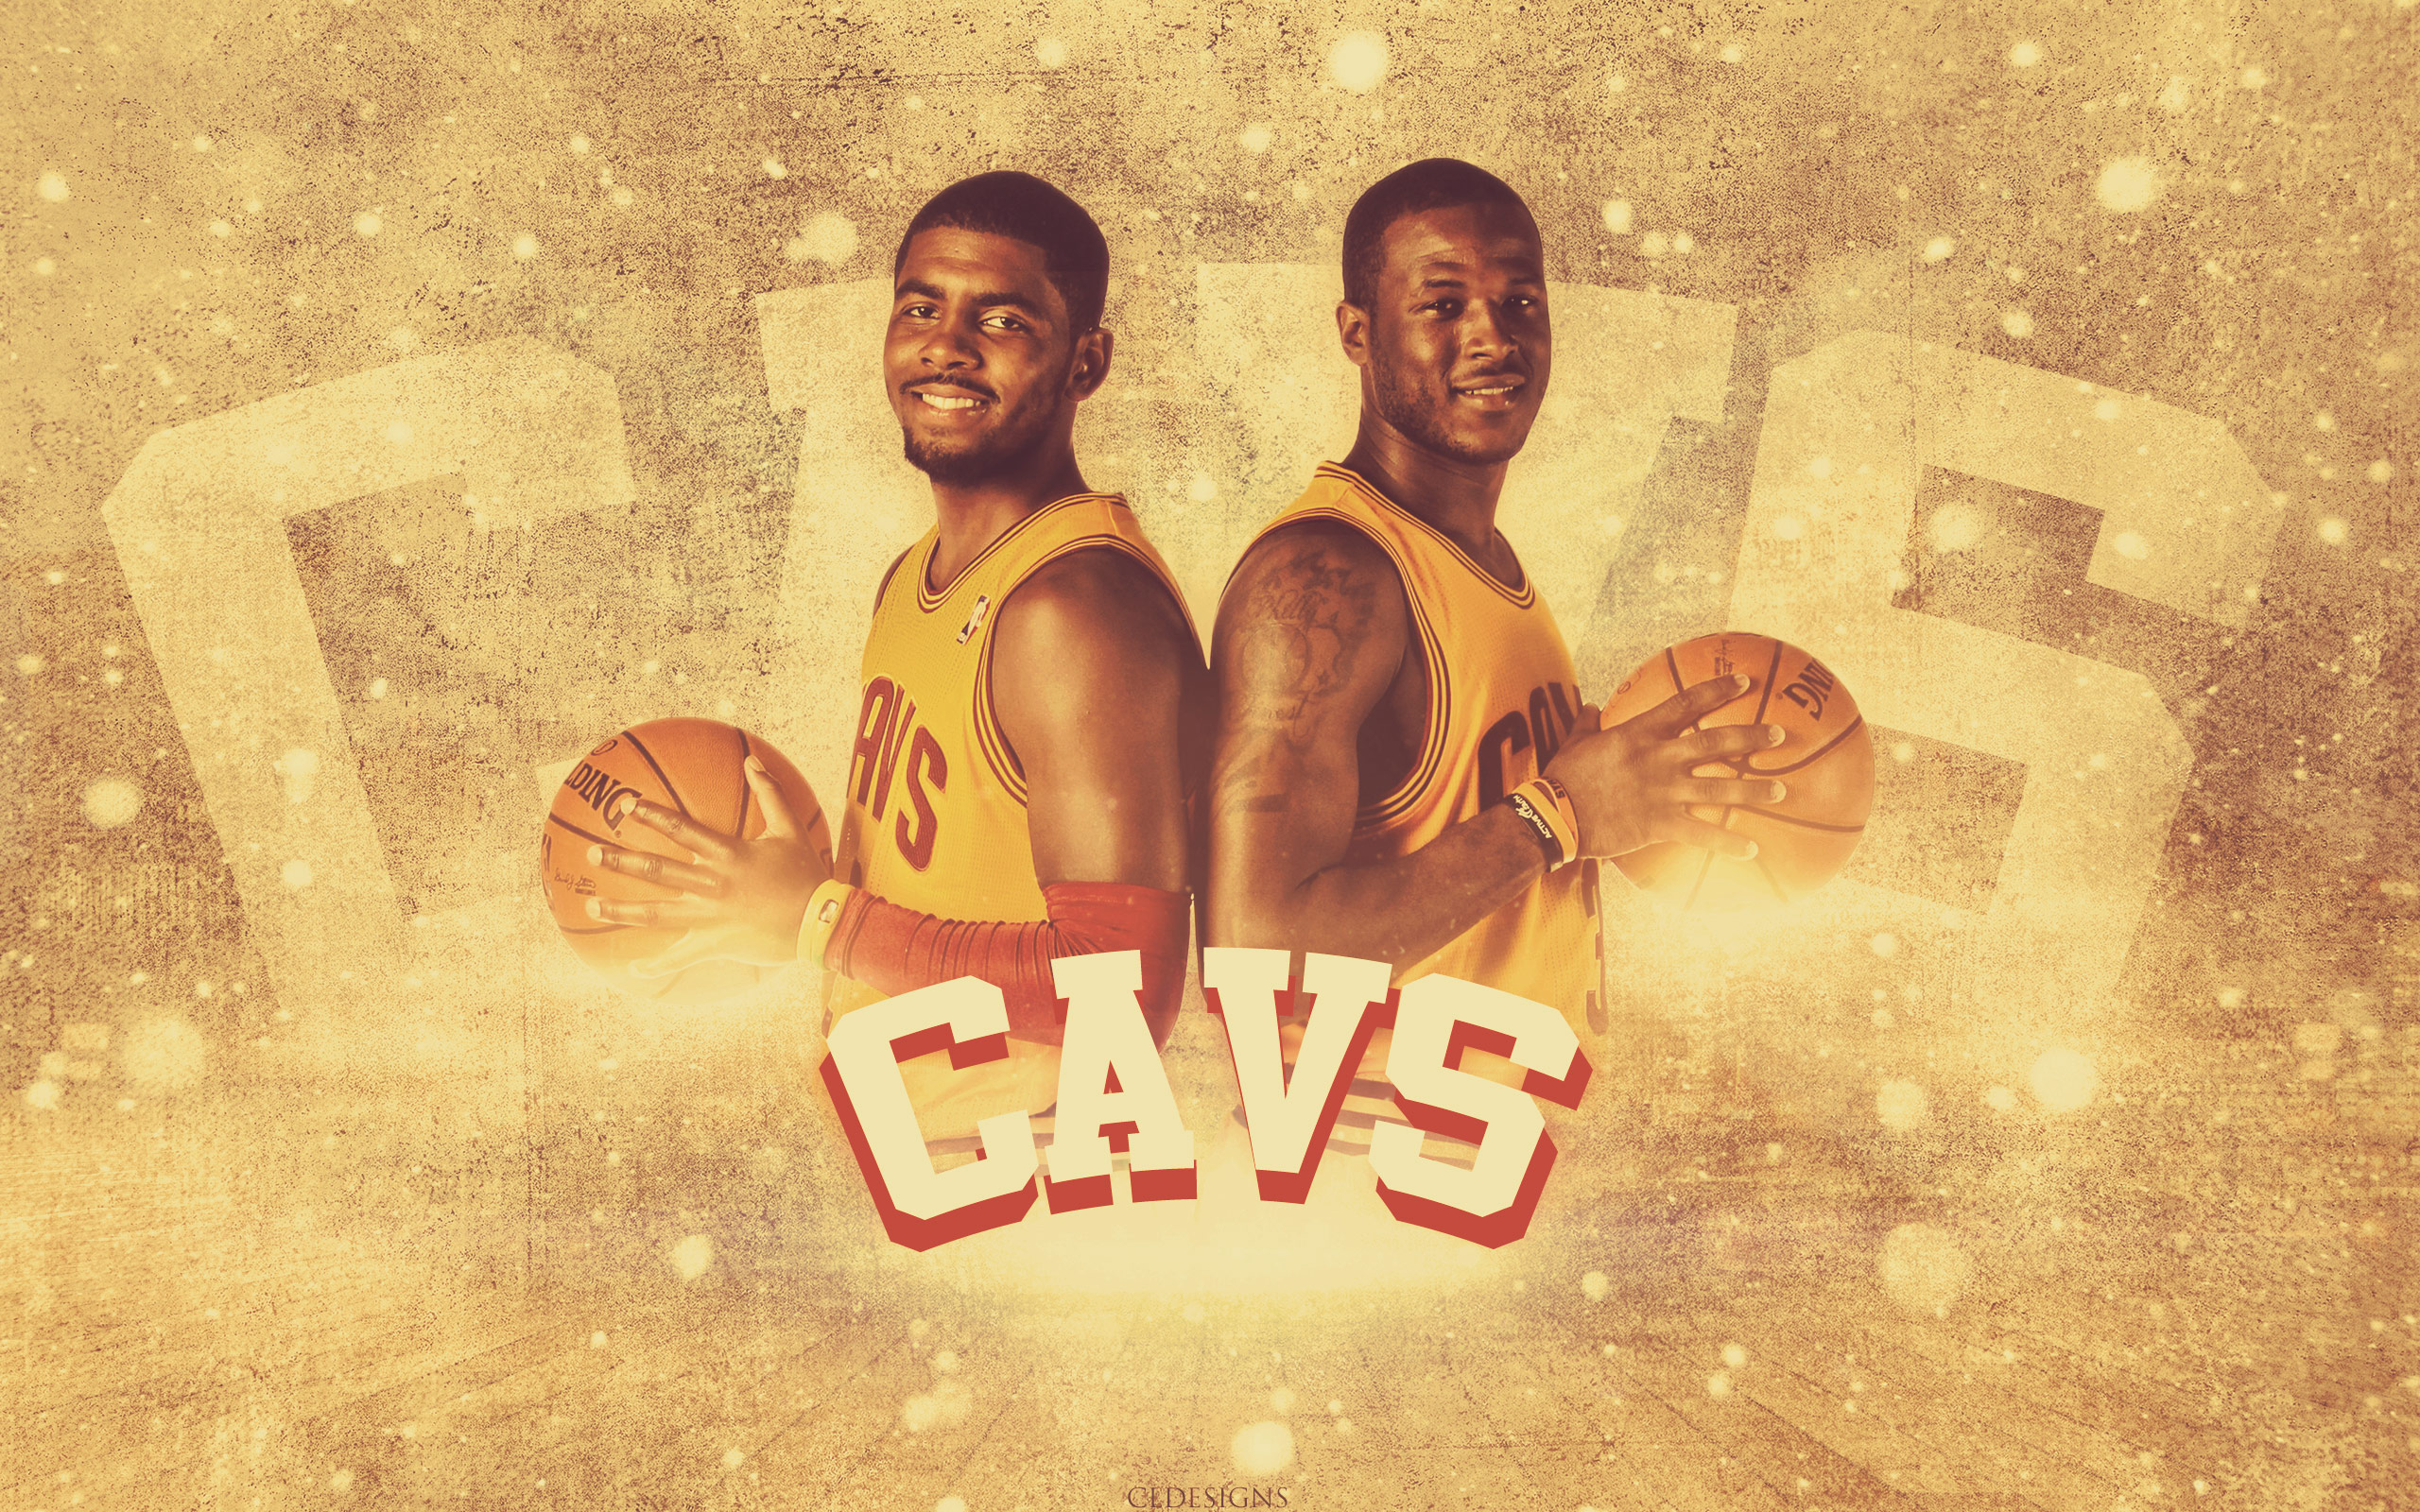 Hd wallpaper kyrie irving - Kyrie Irving And Dion Waiters Cavs 2560x1600 Wallpaper